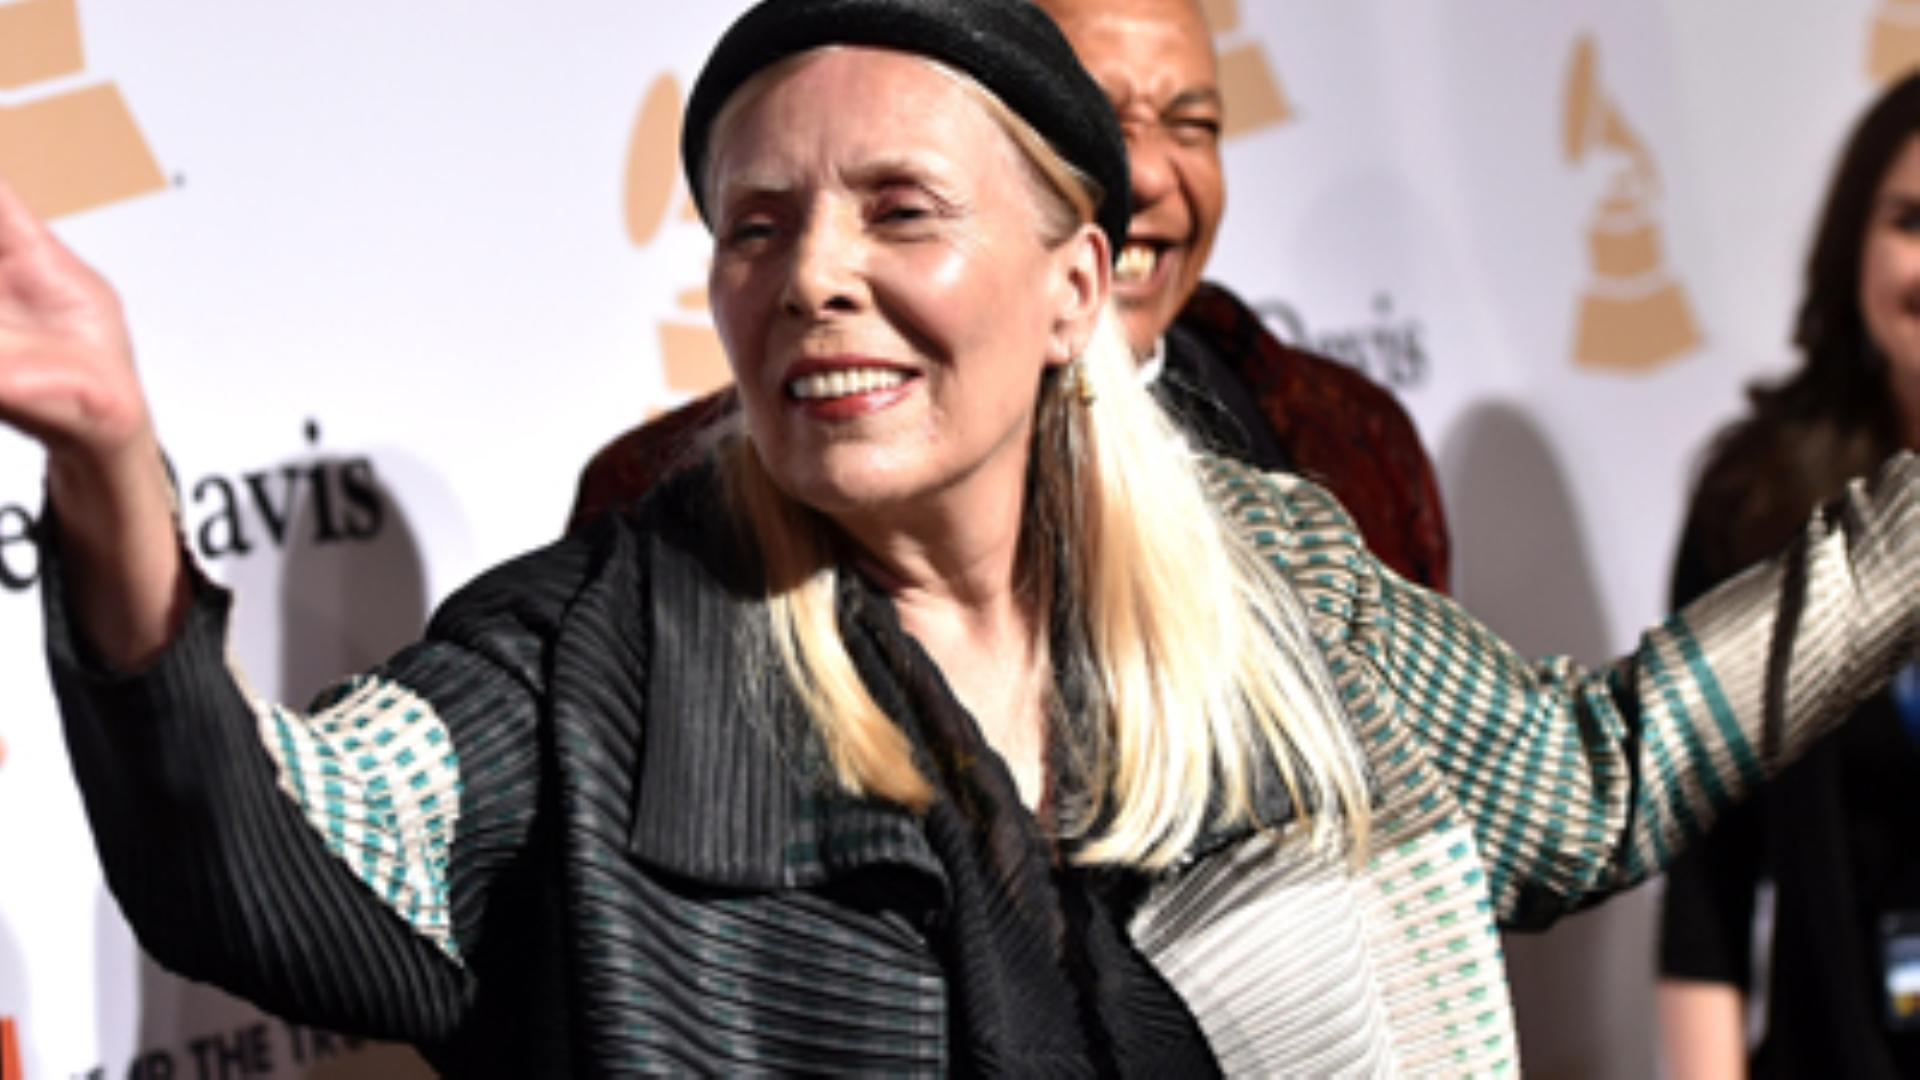 Singer Joni Mitchell hospitalized in Los Angeles